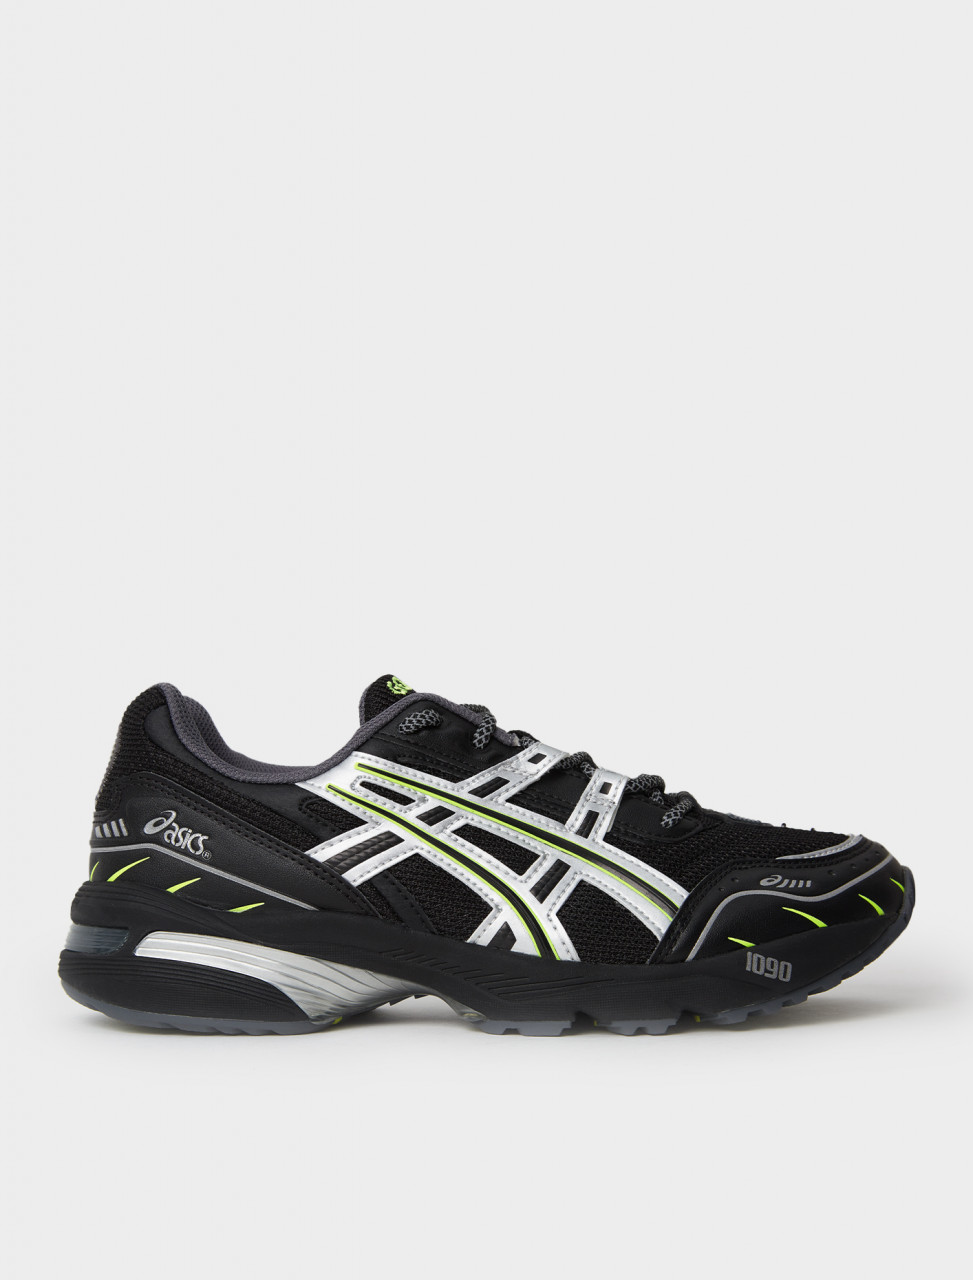 1201A041-001 ASICS GEL 1090 BLACK SILVER